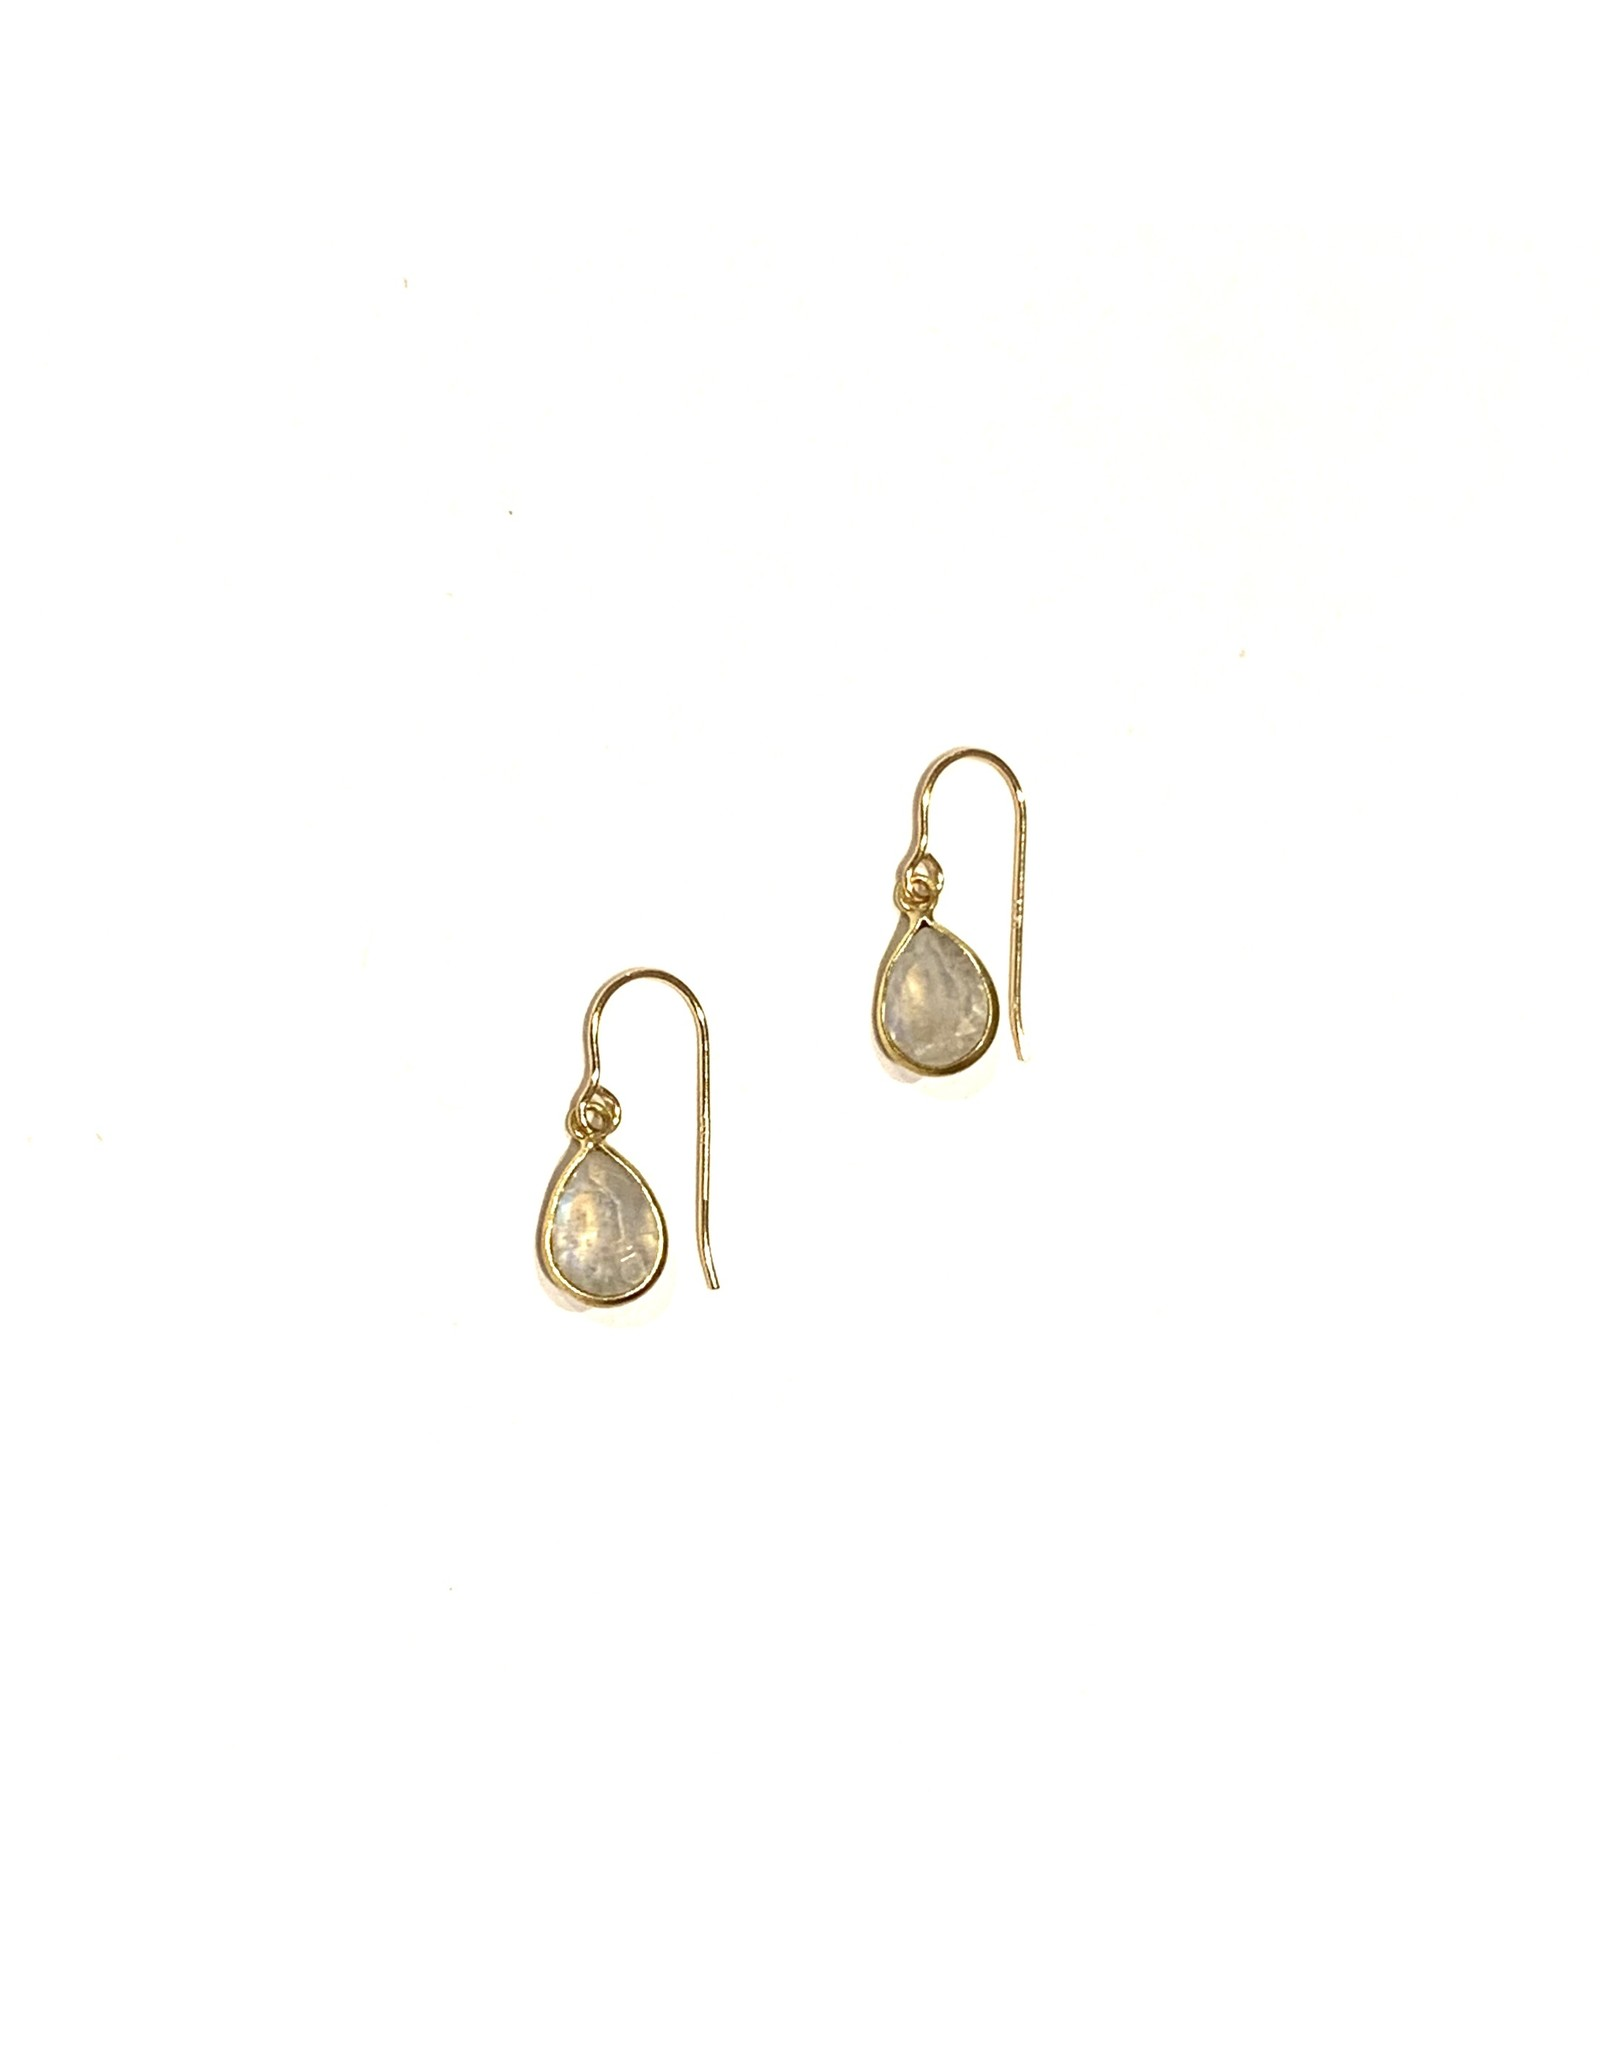 Bo Gold Earrings - Gold - Moonstone